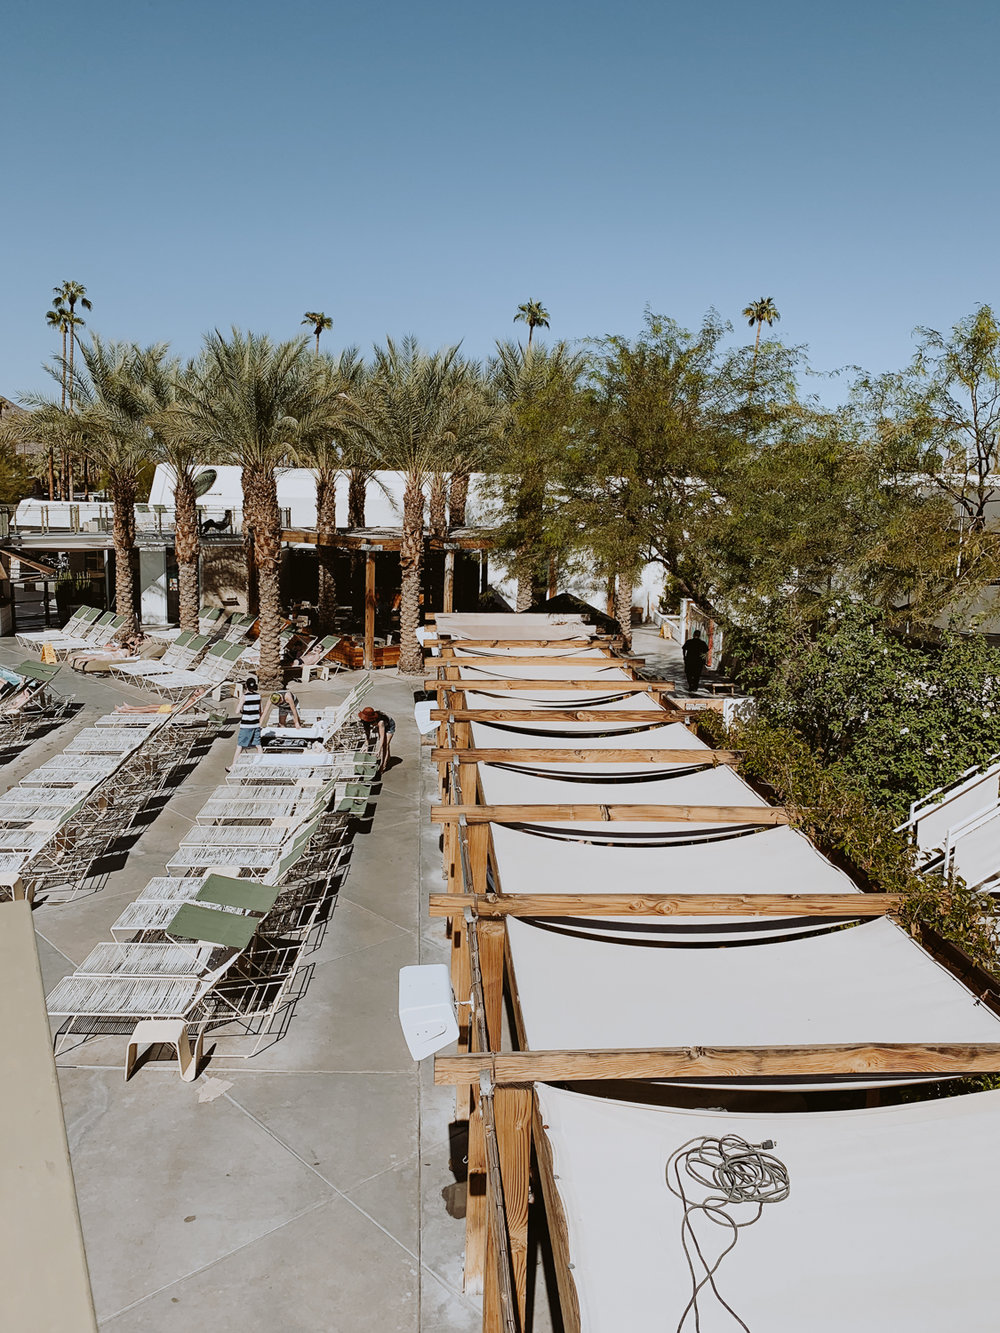 ace_hotel_palm_springs-32.jpg